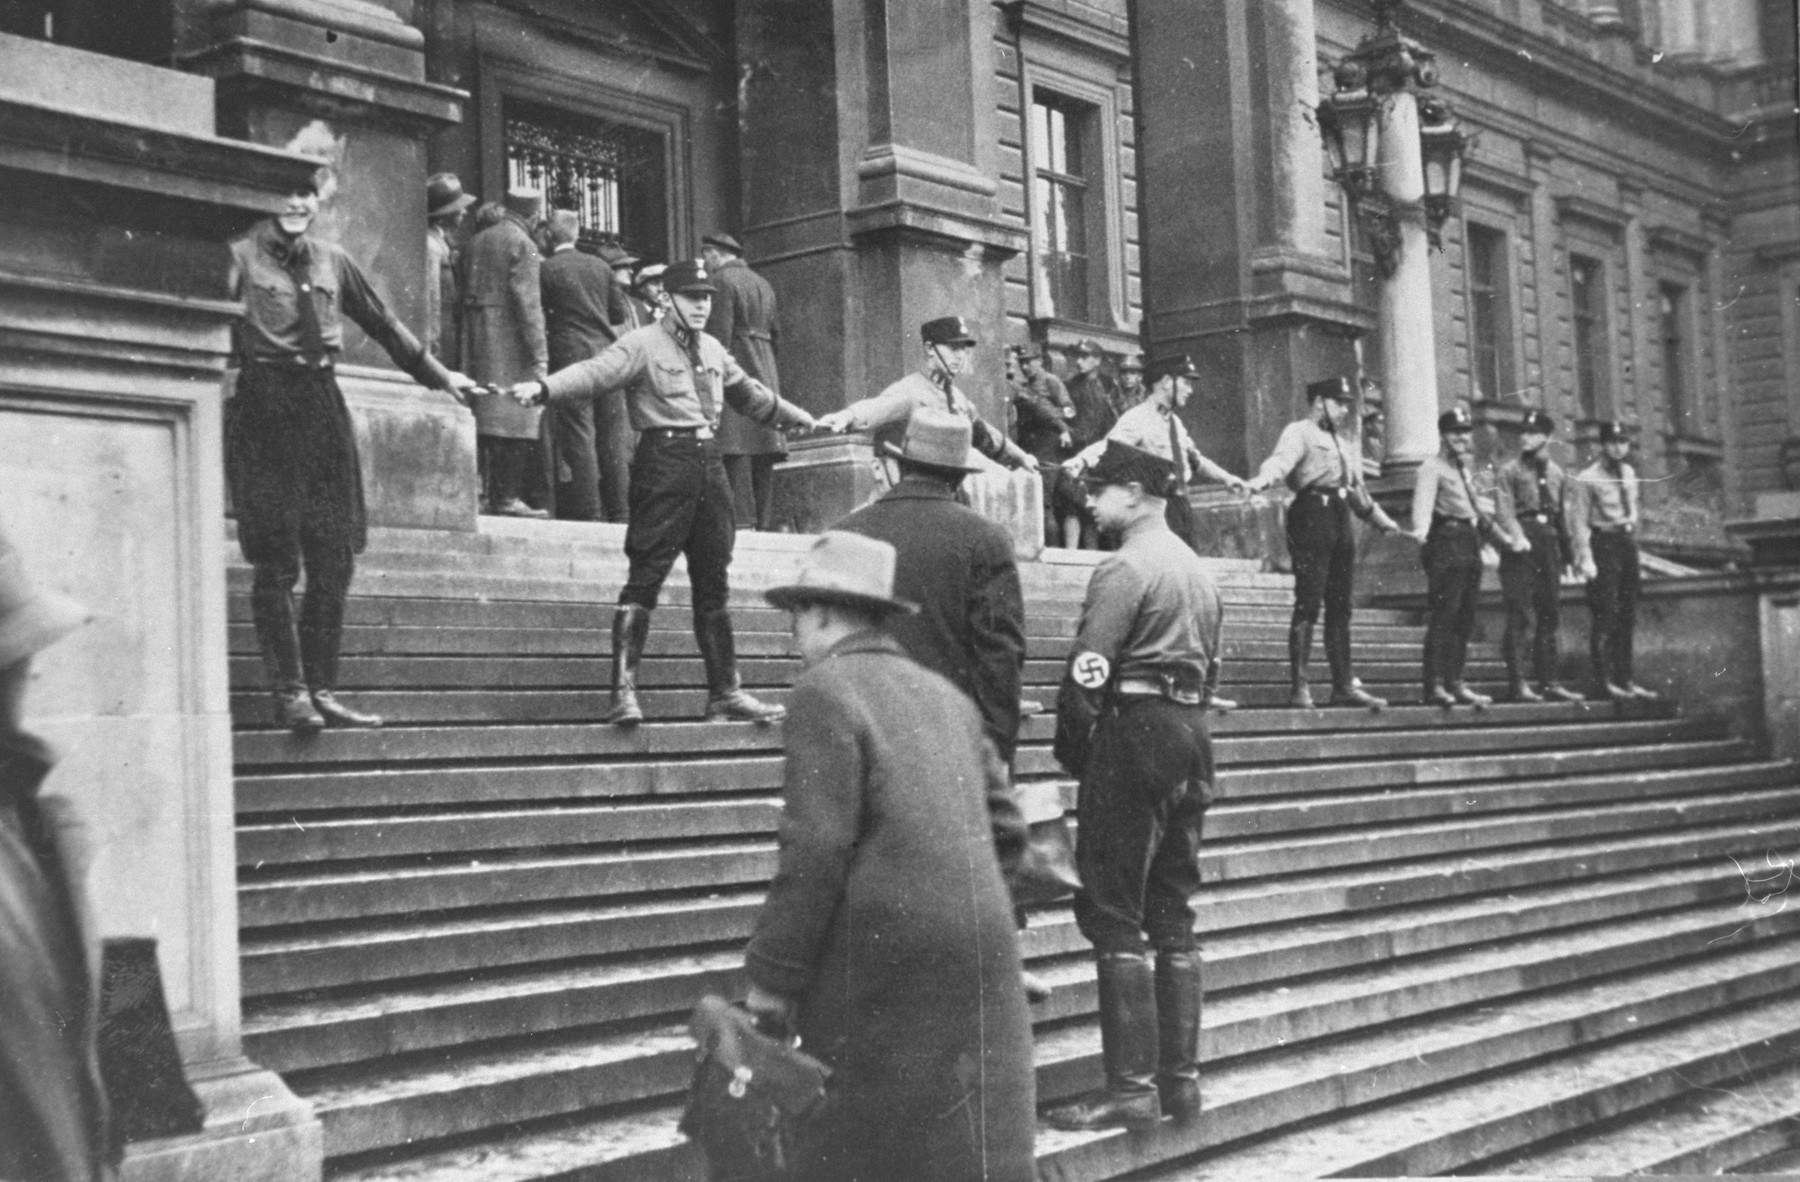 Uniformed men standing on building steps with arms interlocked